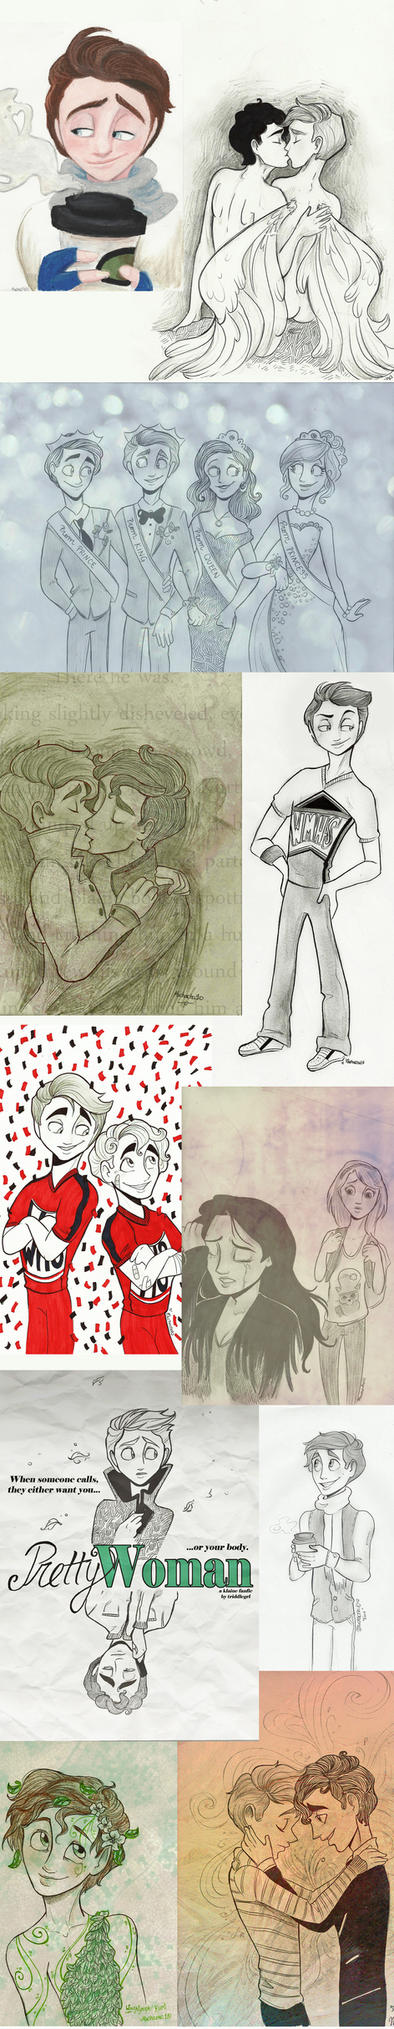 Tumblr Picture Dump by Muchacha10